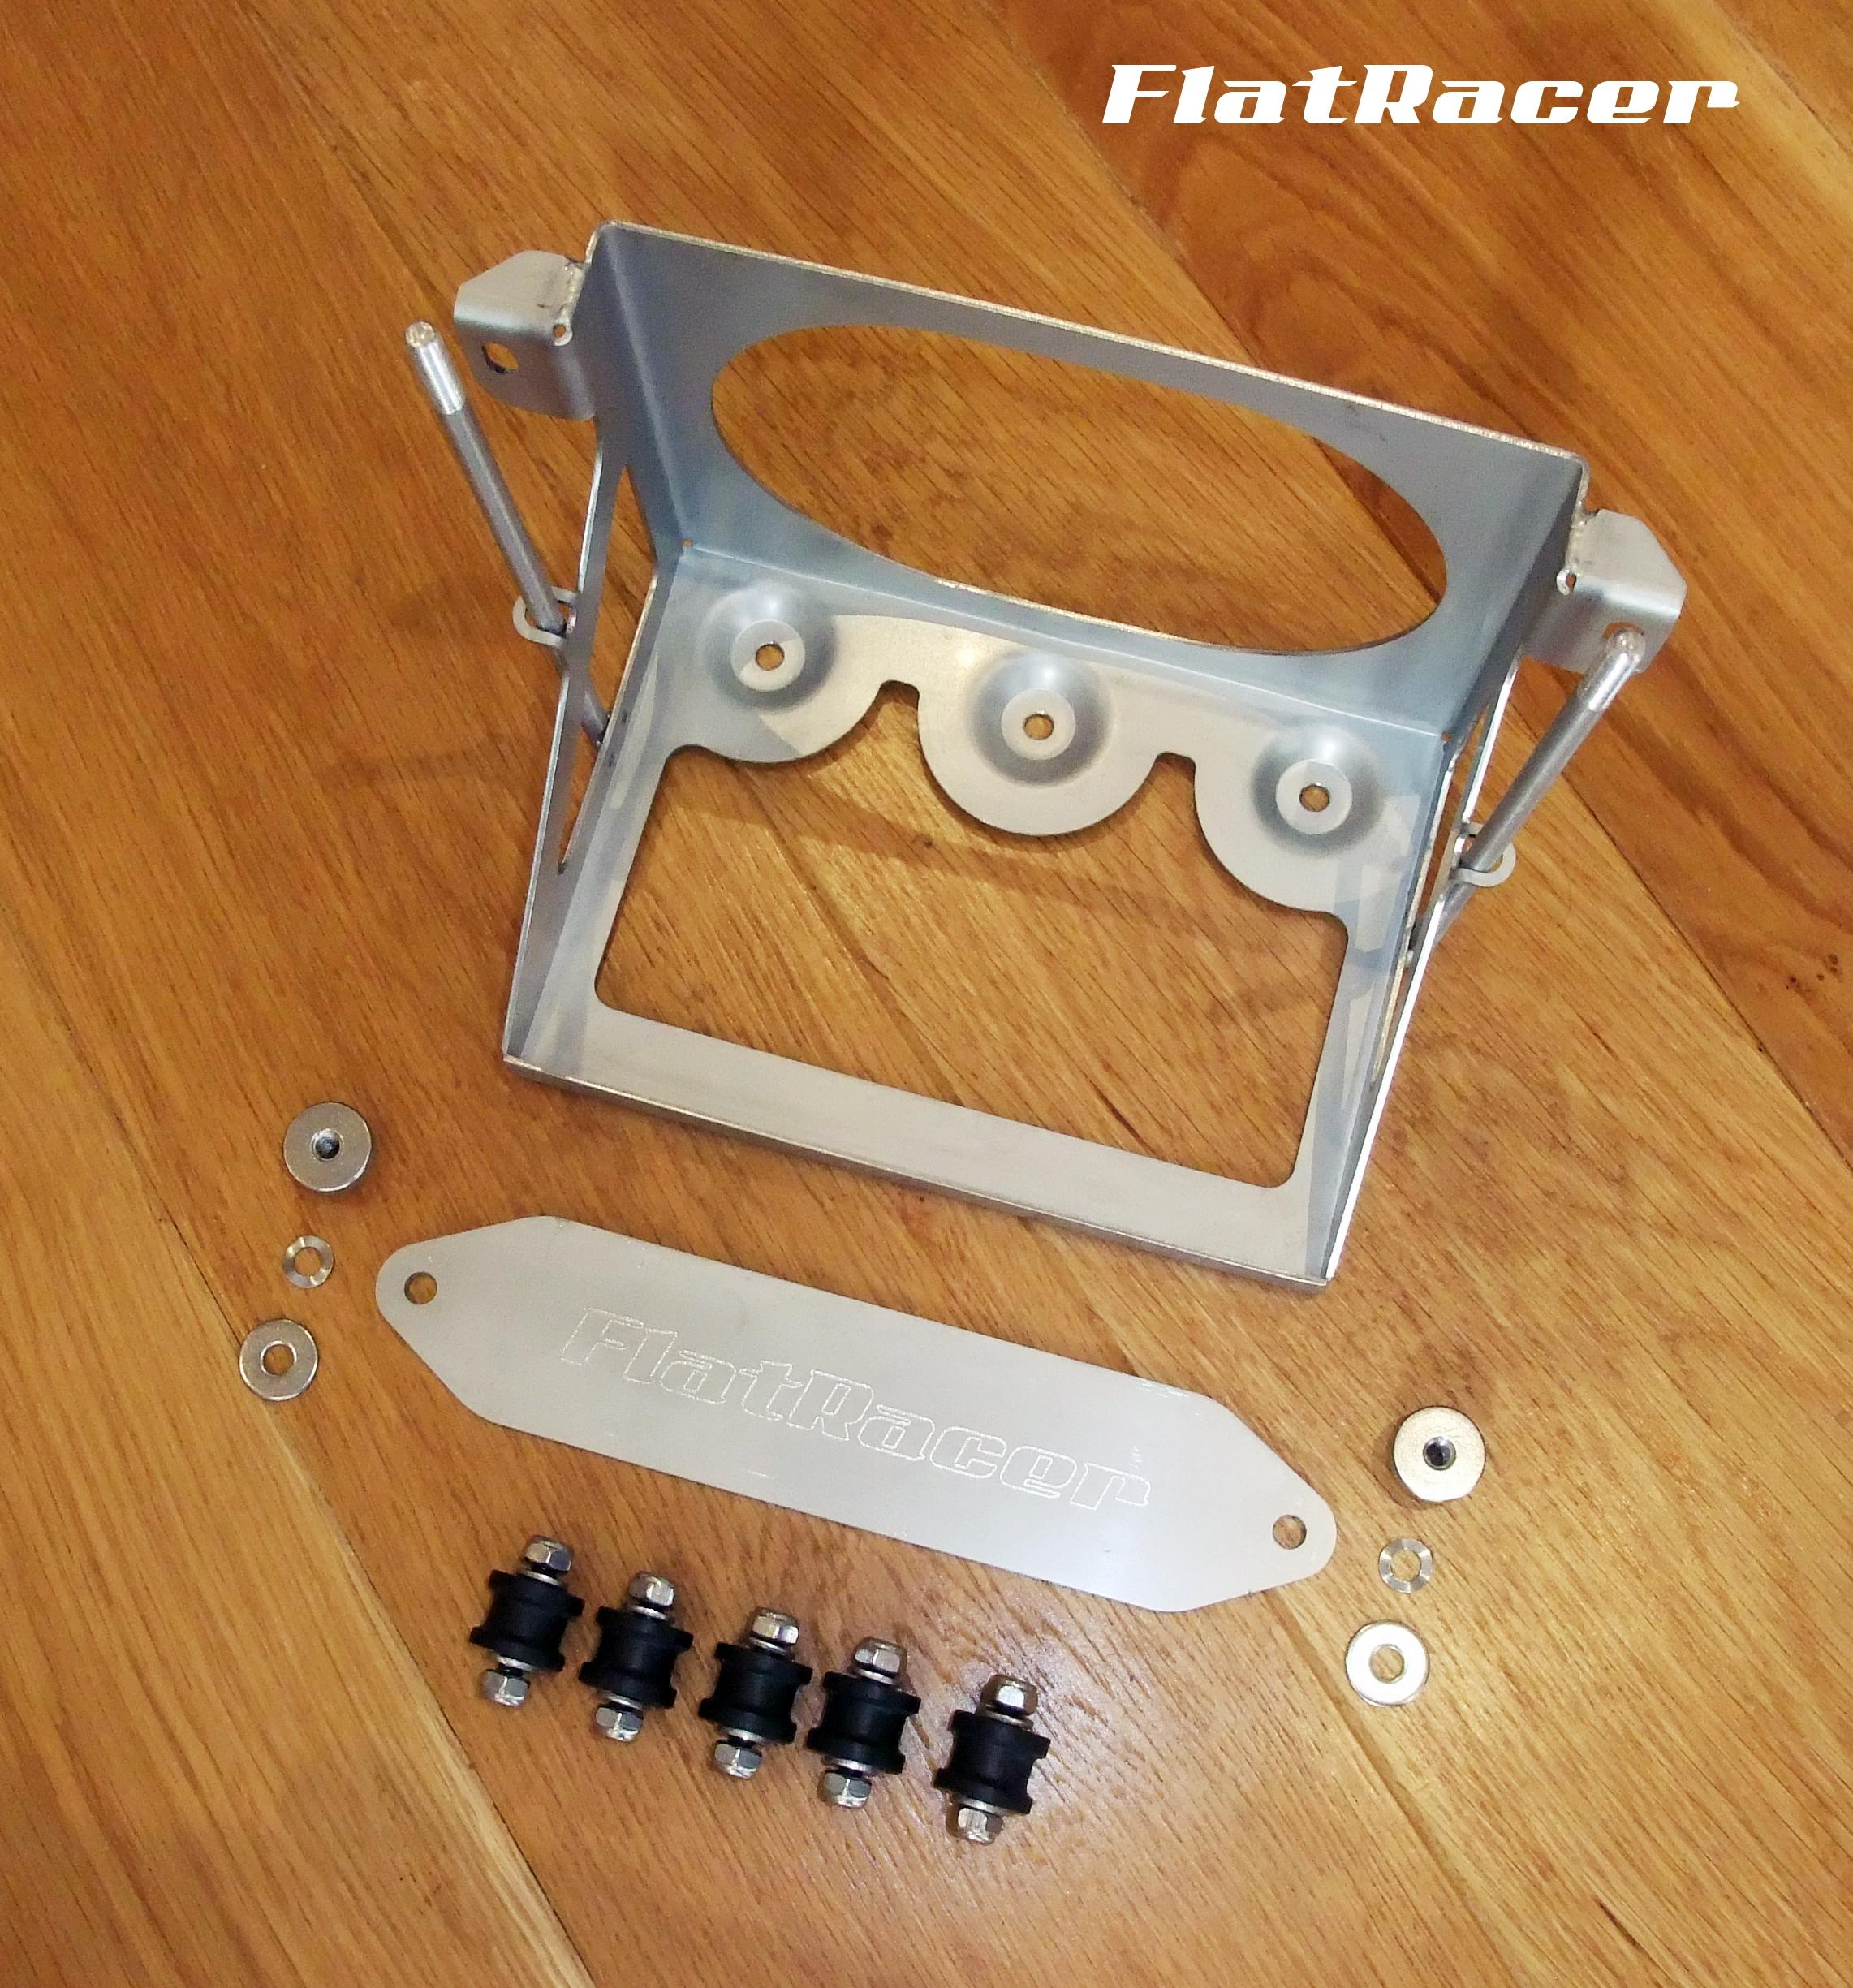 FlatRacer BMW /6 & /7 Series (73-84) standard stainless steel battery tray - with 5 x M6 rubber bobbins